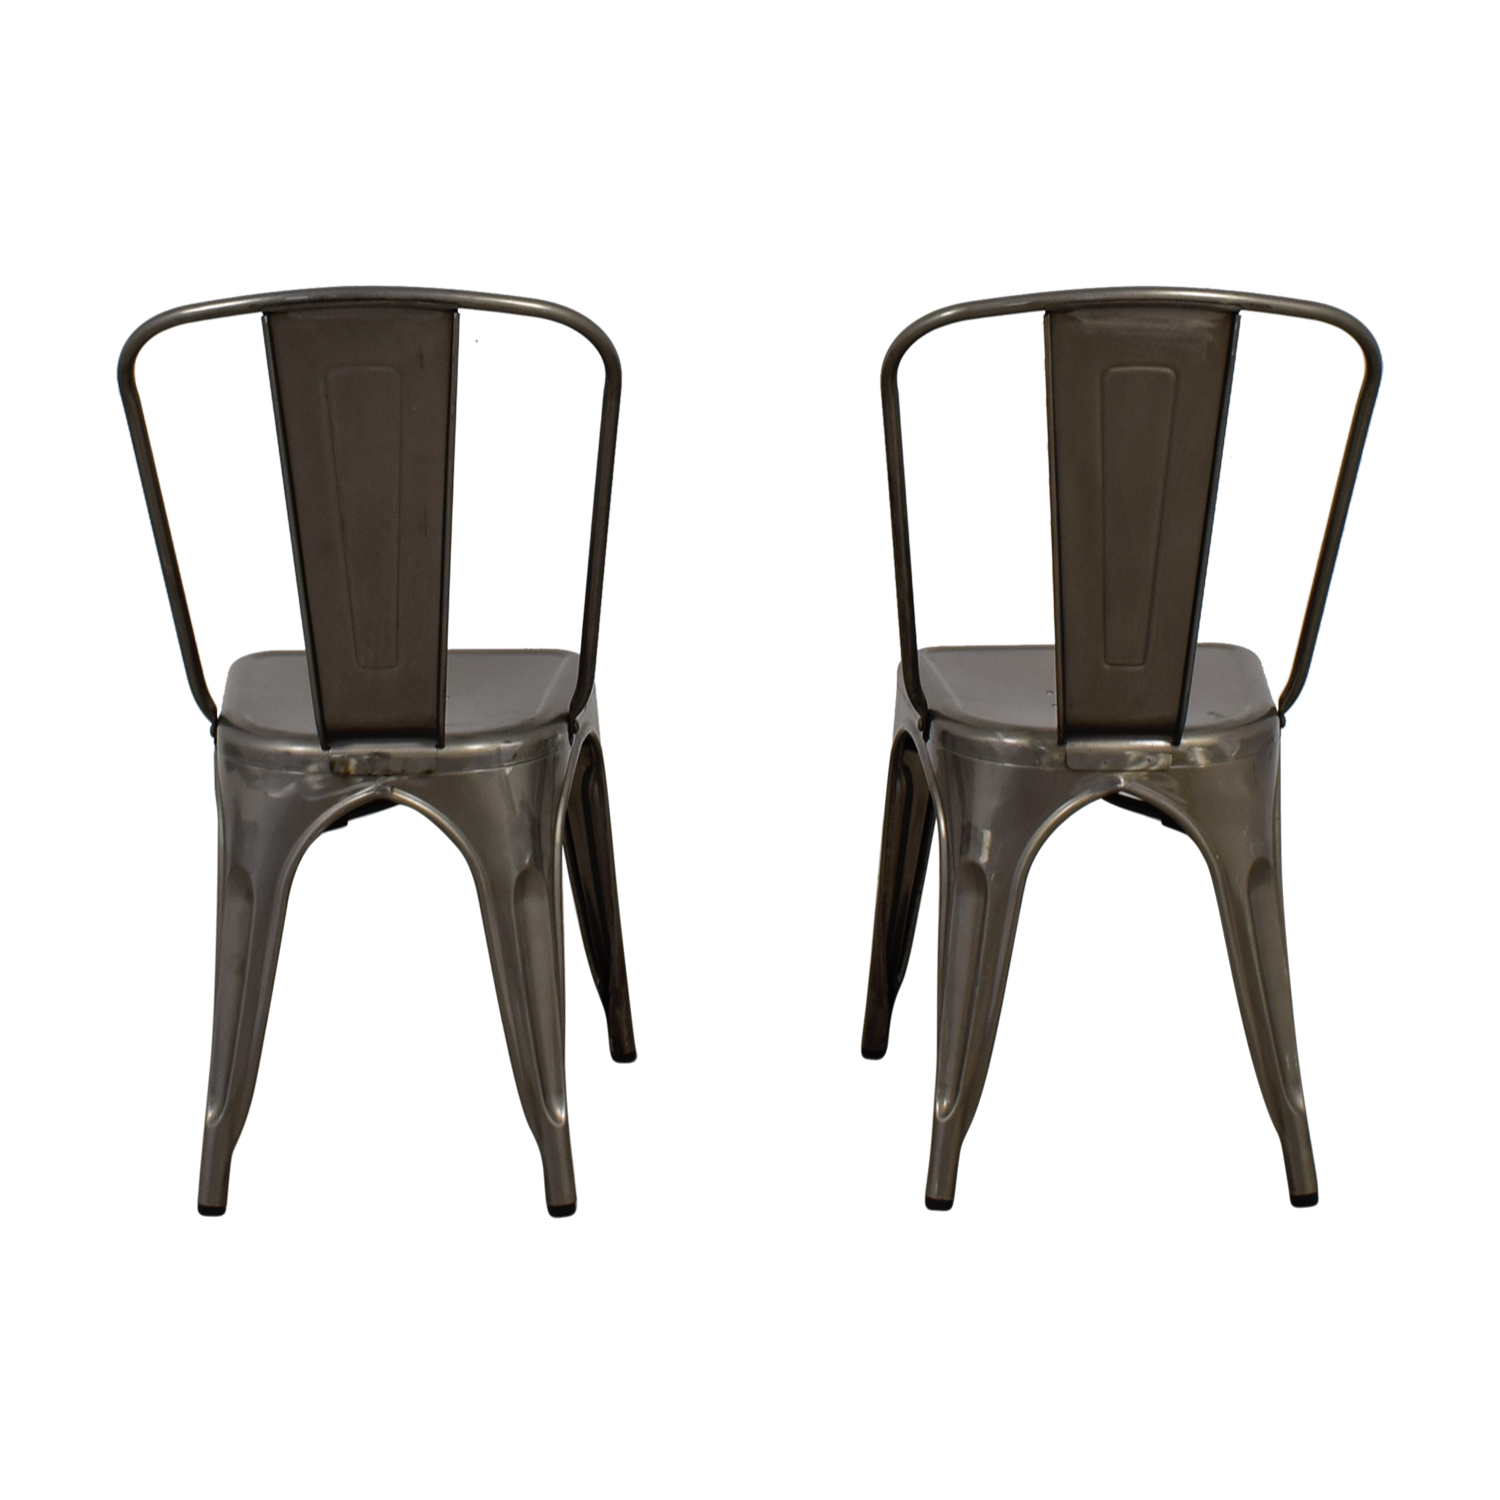 Brushed Metal Bistro Chairs / Dining Chairs